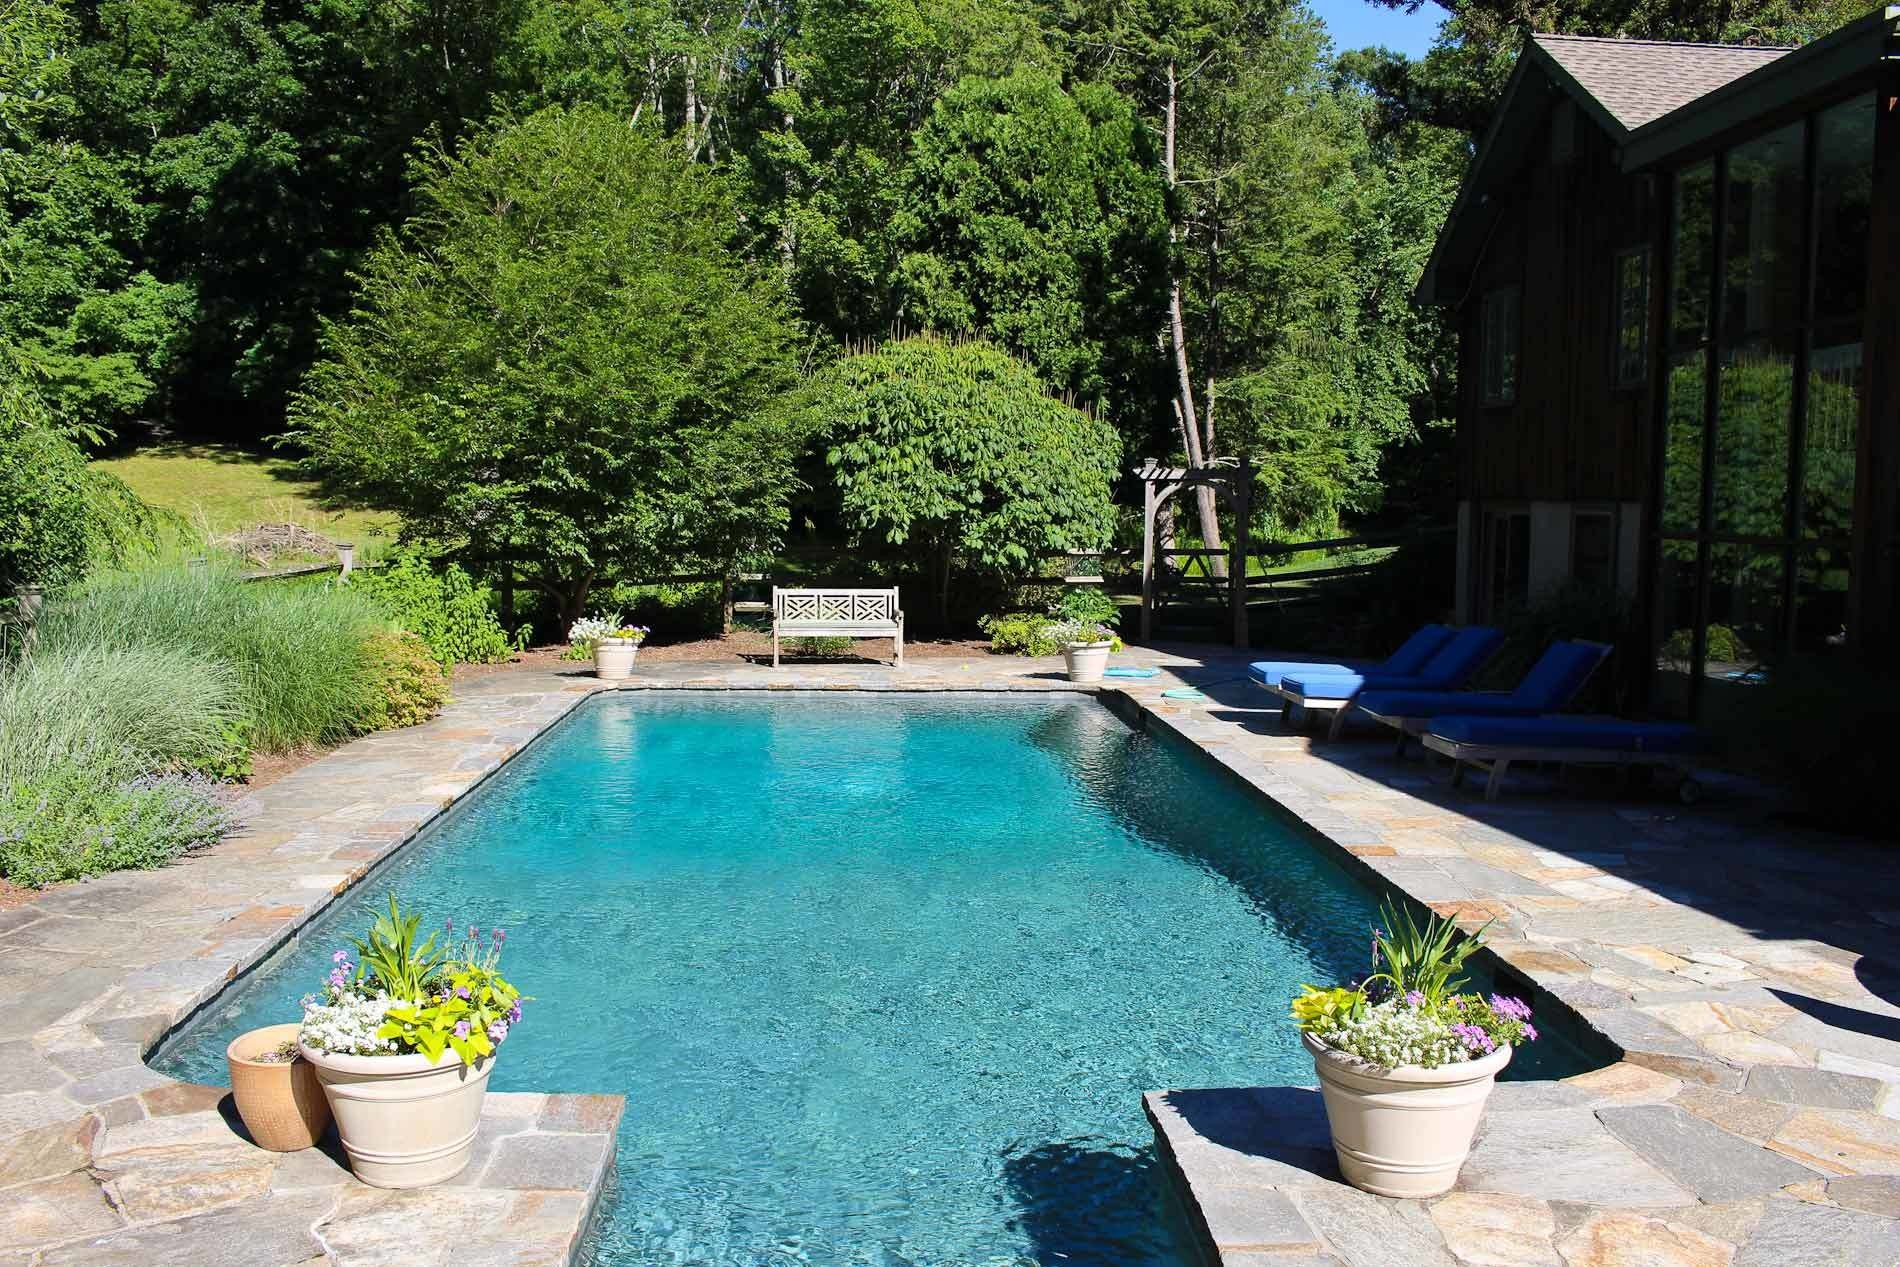 Houses With Inground Pools For Sale